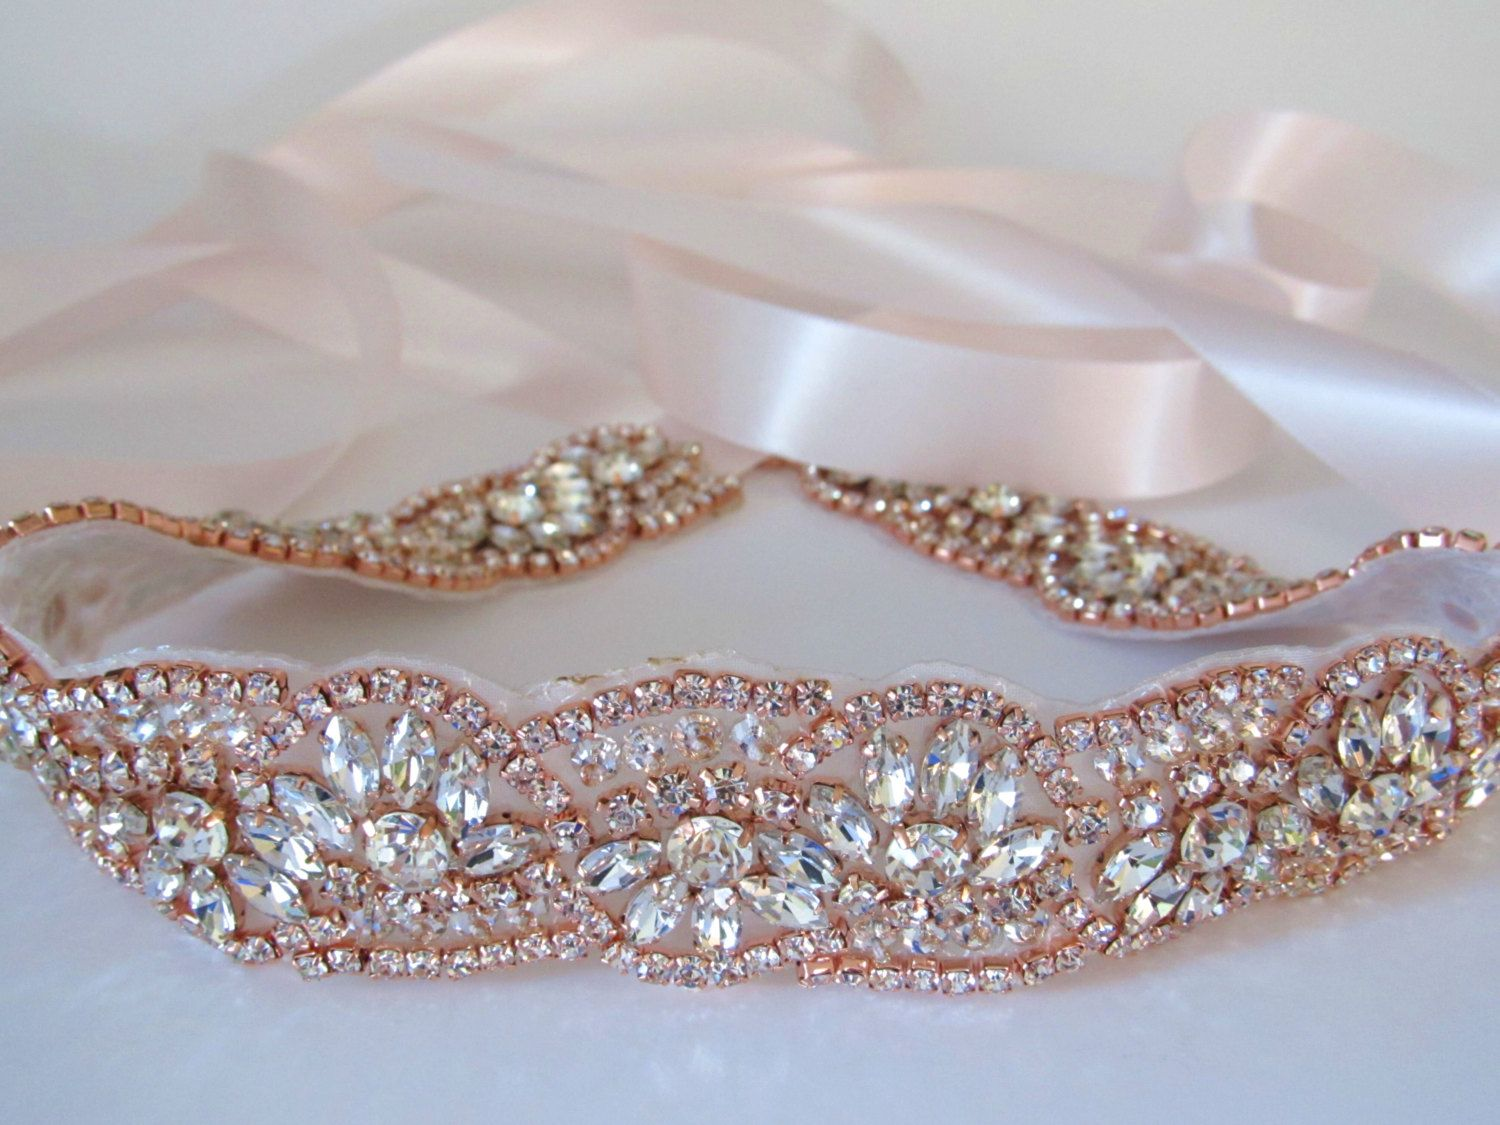 Rose Gold Crystal Rhinestone Bridal Sash,Wedding sash,Bridal Accessories,Bridal Belt and sashes,Ribbon Sash,Style #46 by lostintimeinc on Etsy https://www.etsy.com/listing/277580852/rose-gold-crystal-rhinestone-bridal